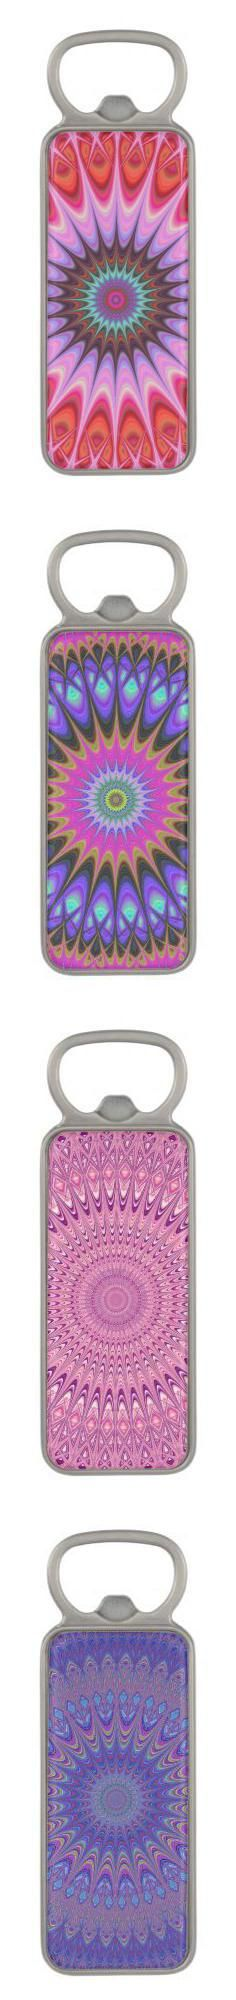 Mandala magnetic bottle openers - abstract bohemian drinkware design